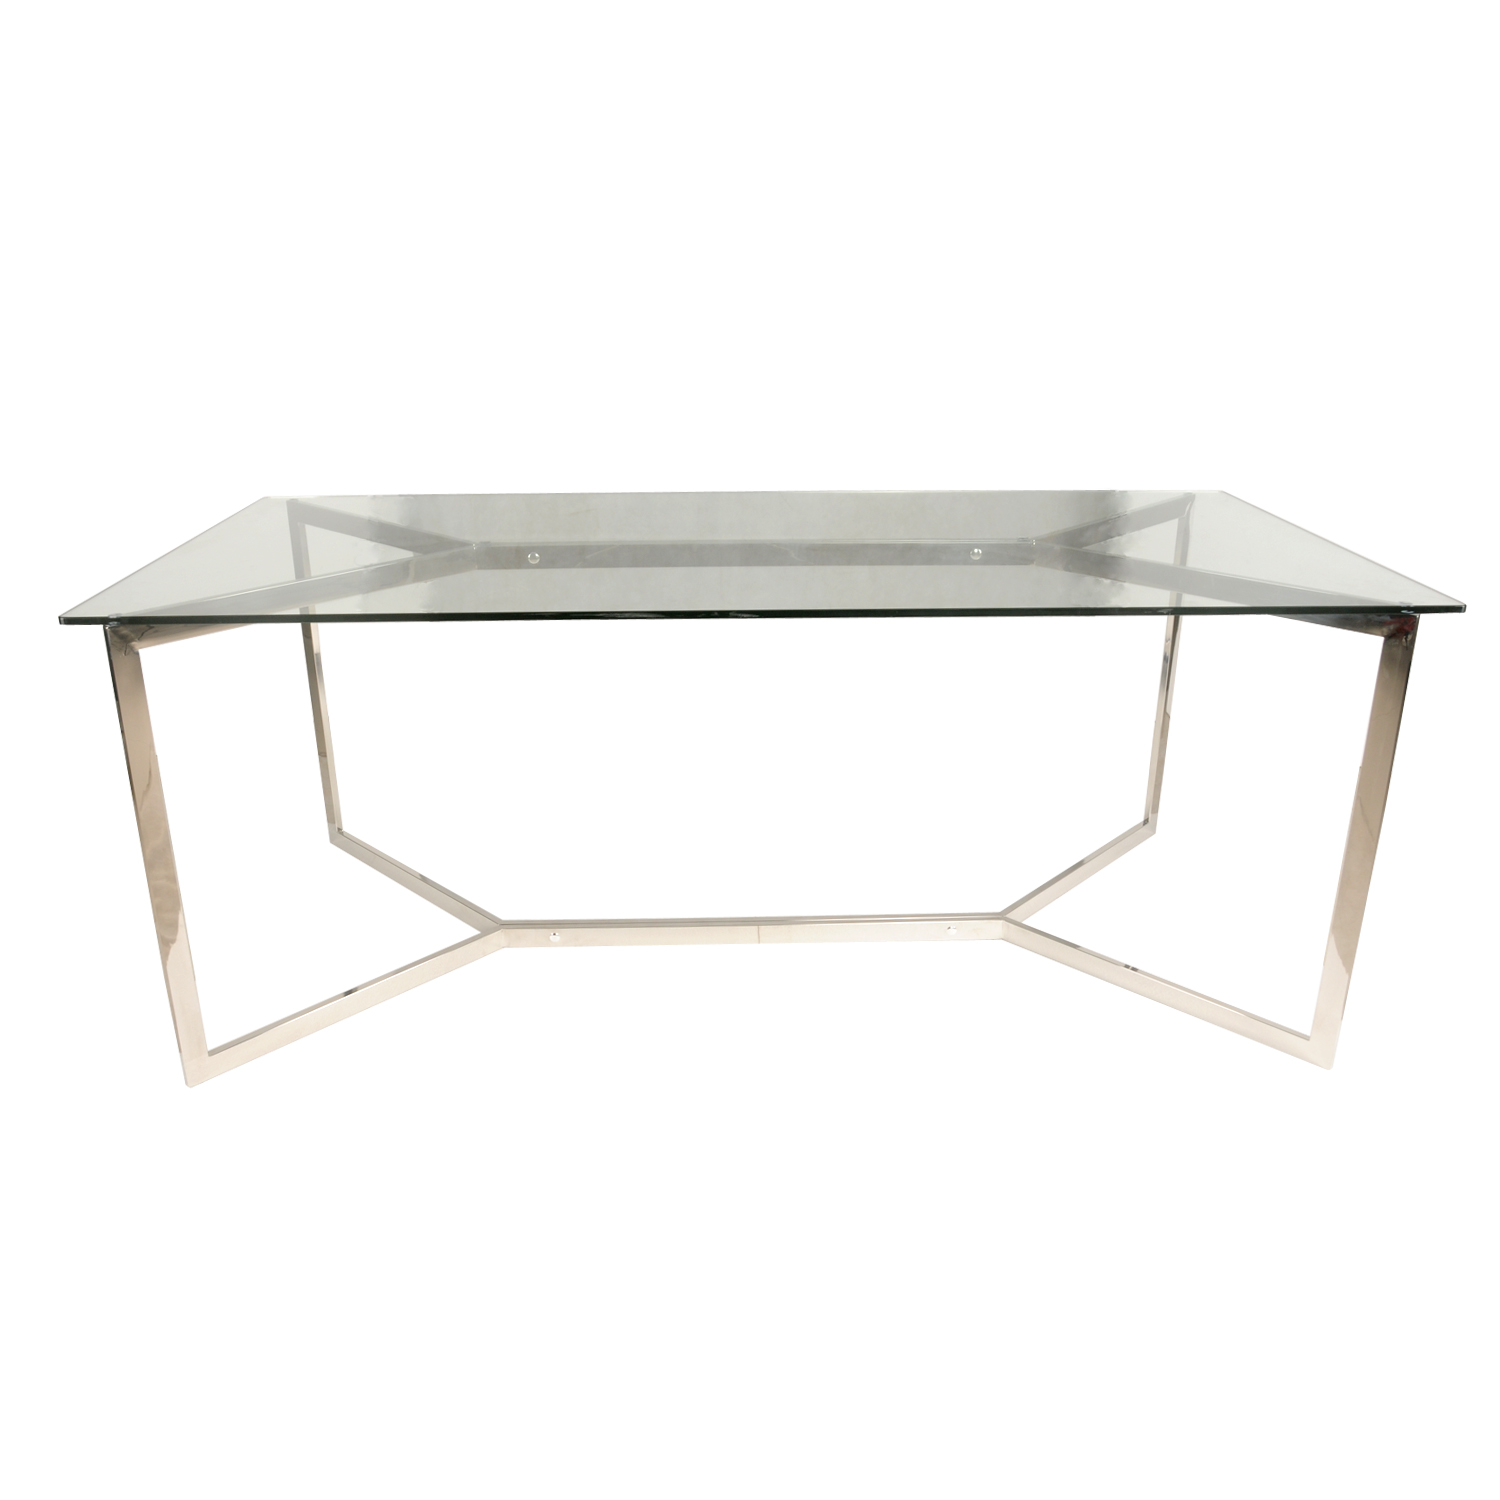 6000011 Ss Npd Home Furniture Wholesale Lifestyle